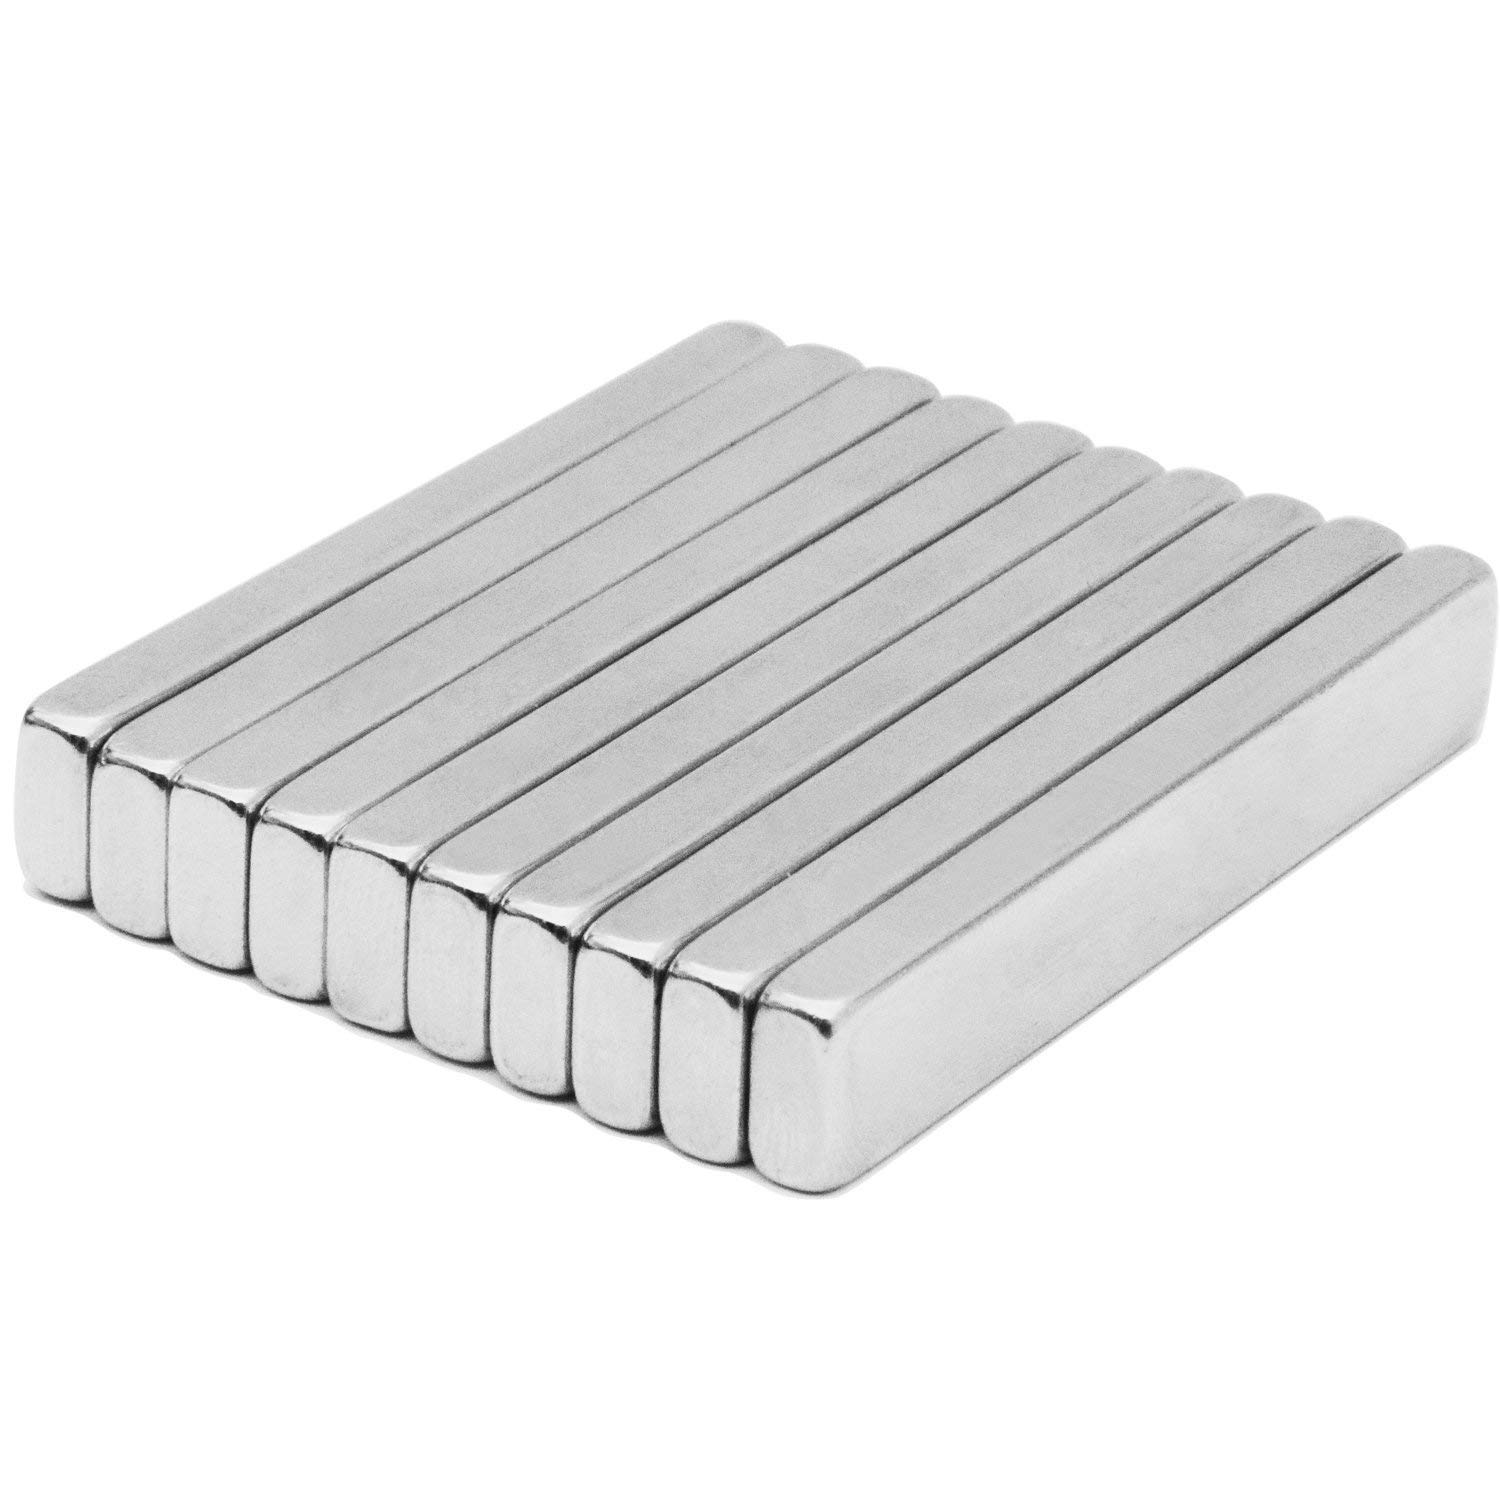 60 x 10 x 5 mm Rare-Earth Metal Neodymium Magnet Pack of 10 Powerful Neodymium Bar Magnets N45 Incredibly Strong 33+ LB Strength